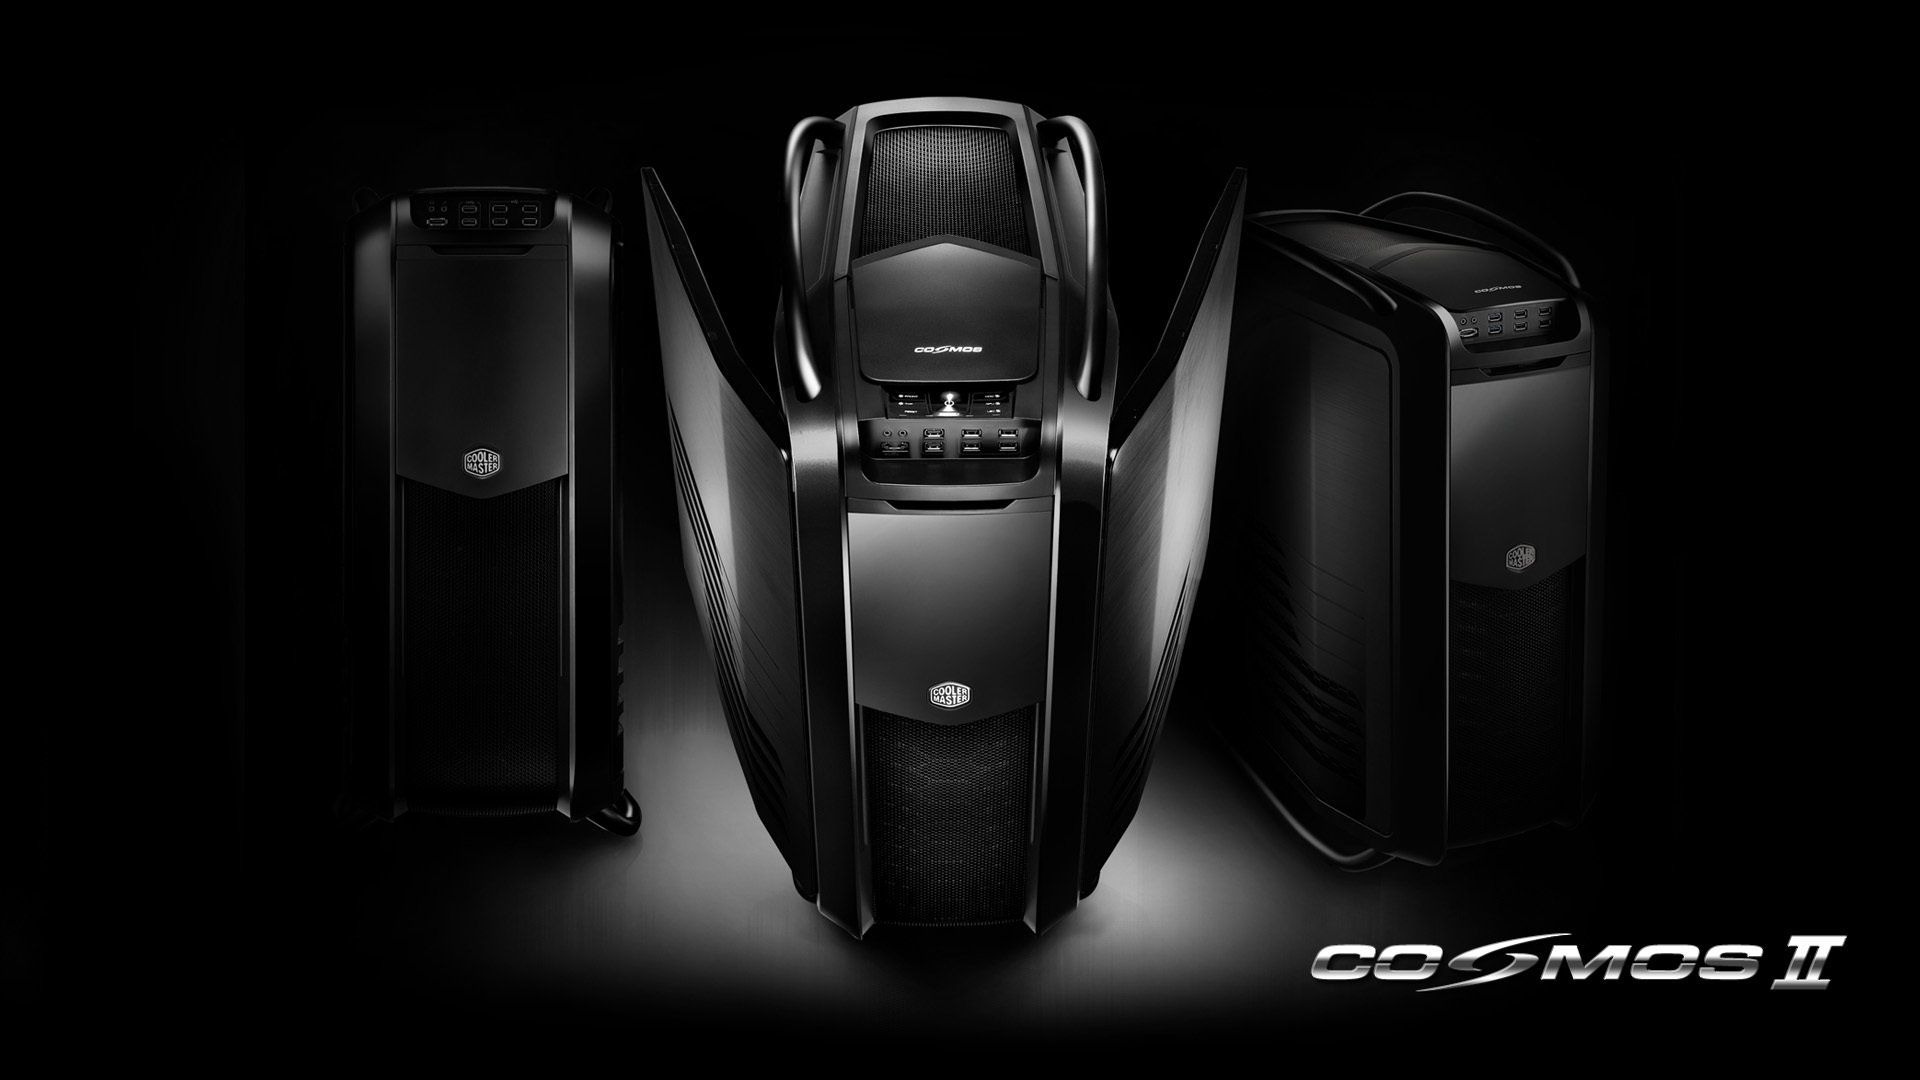 HD Wallpaper Of Cooler Master Cosmos 2